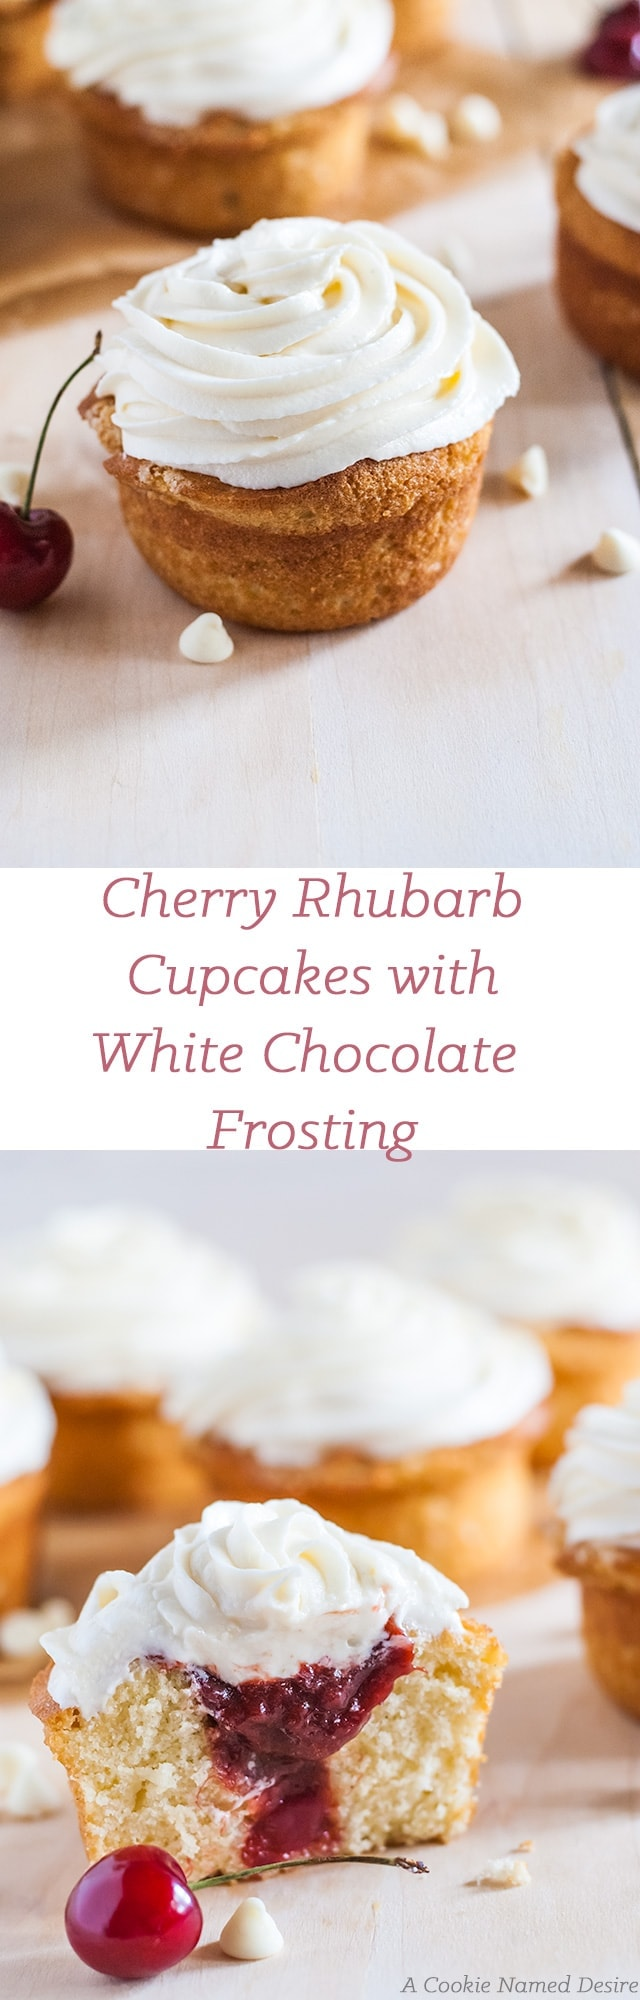 cherry rhubarb cupcakes with white chocolate frosting